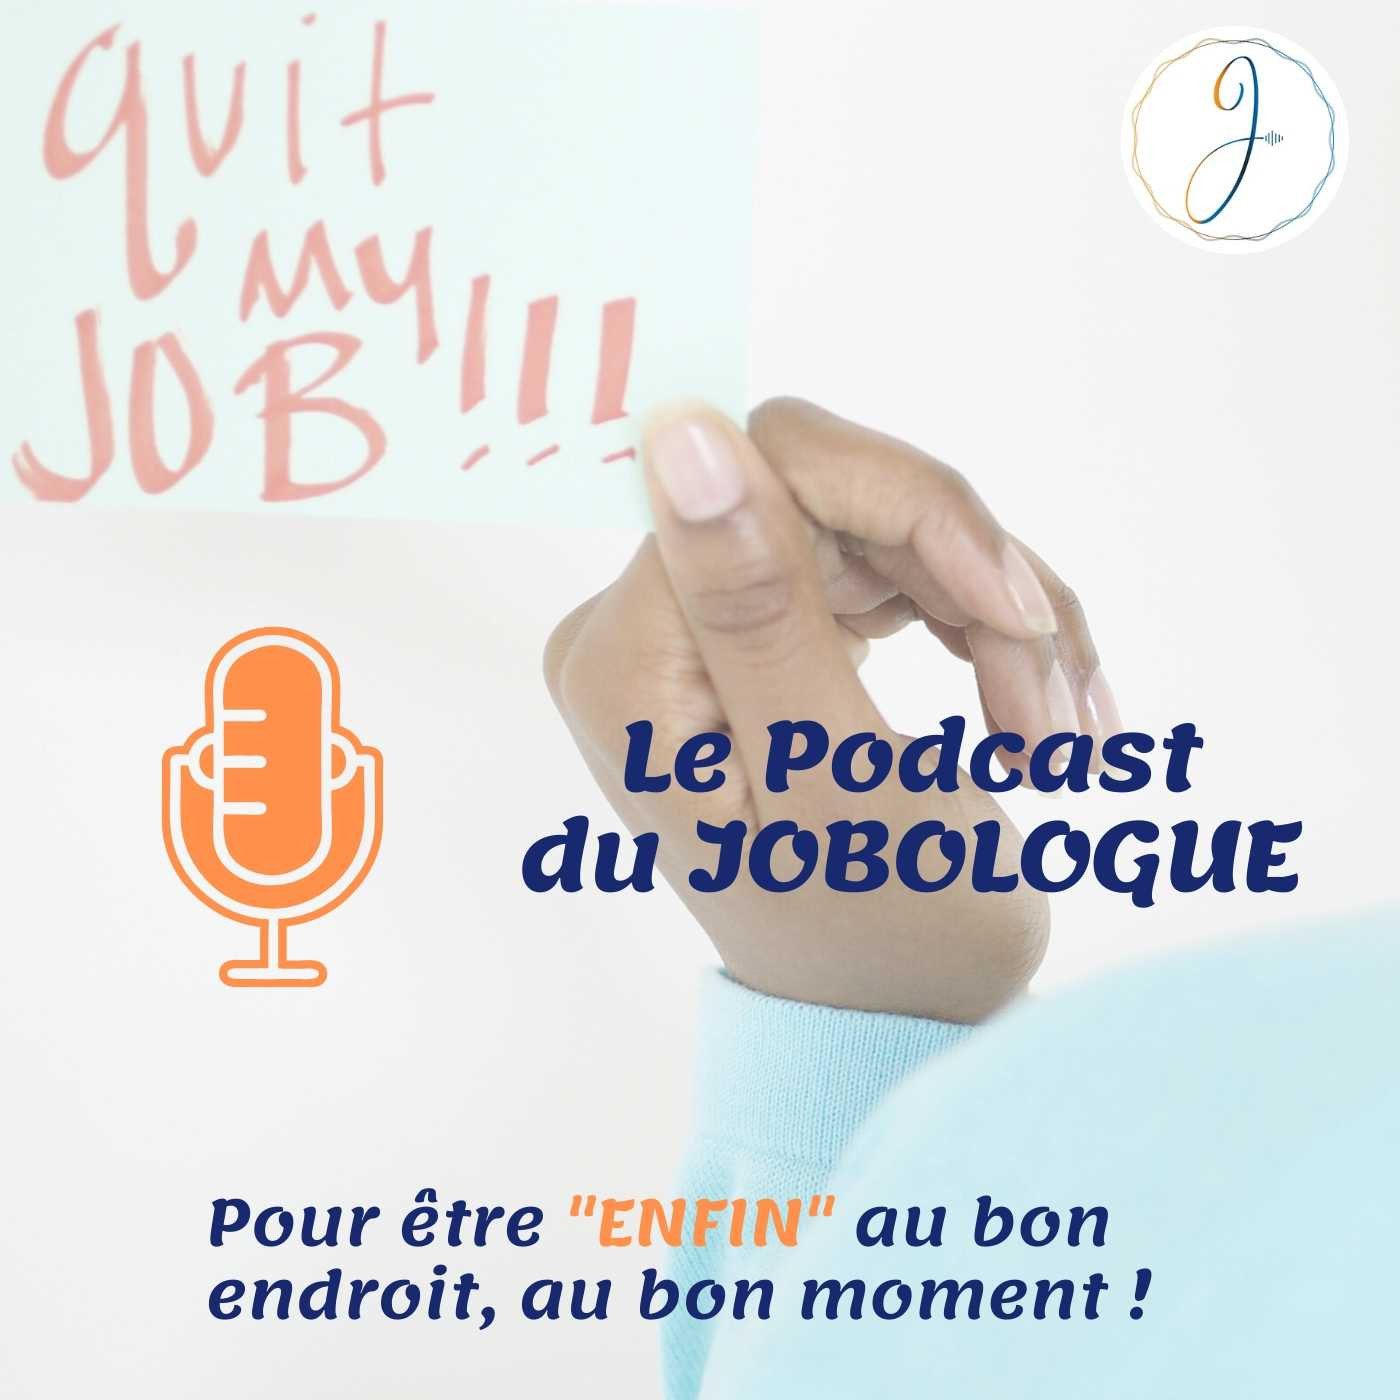 LE PODCAST DU JOBOLOGUE